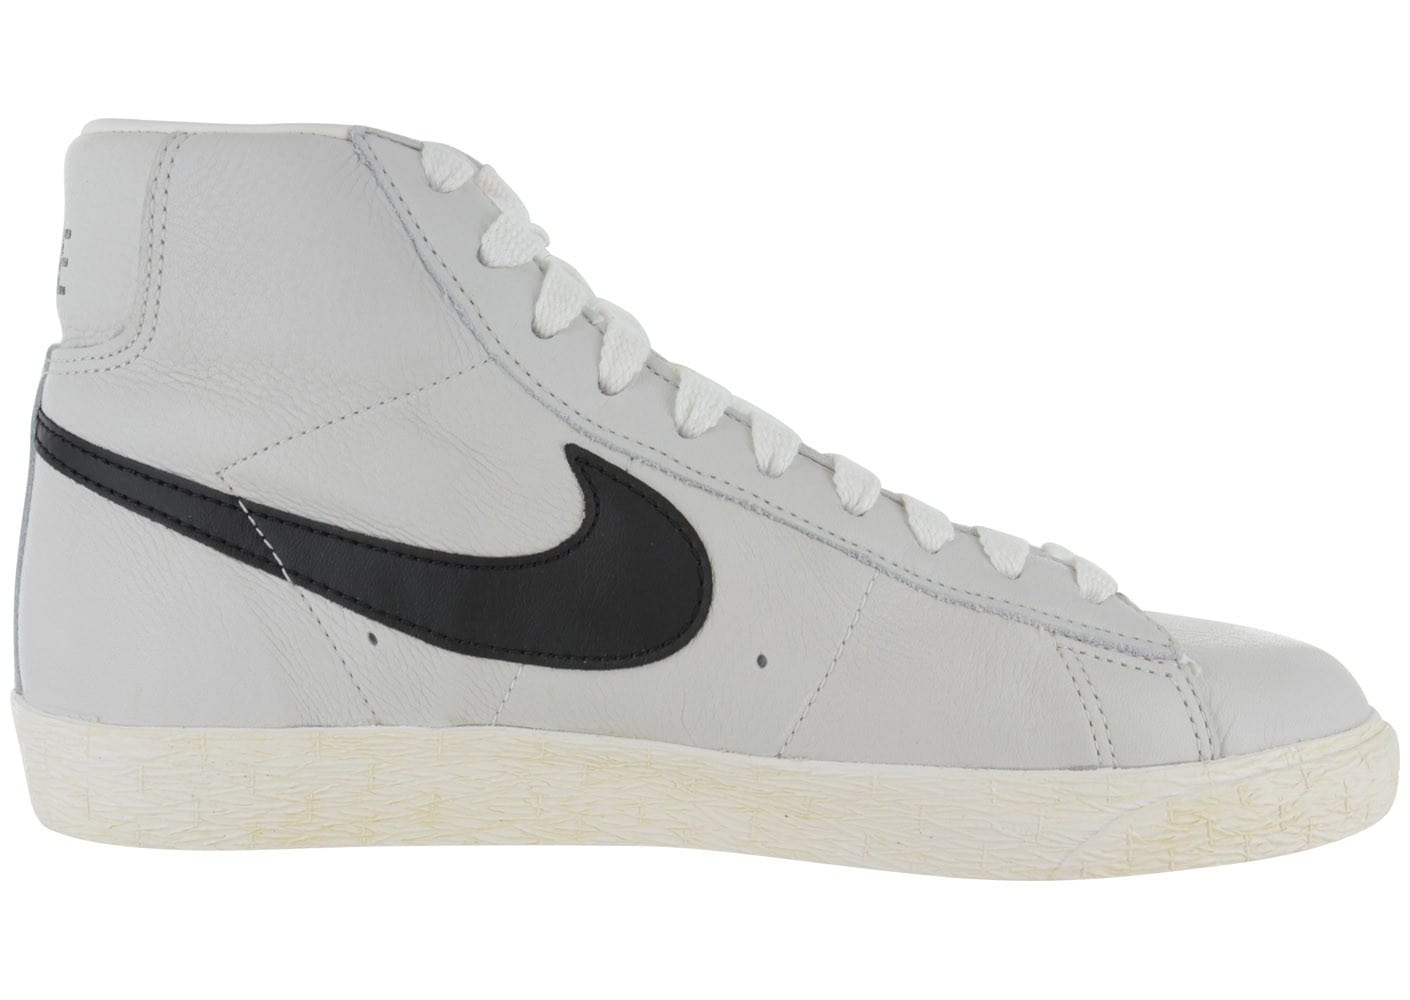 nike blazer cuir grise chaussures homme chausport. Black Bedroom Furniture Sets. Home Design Ideas